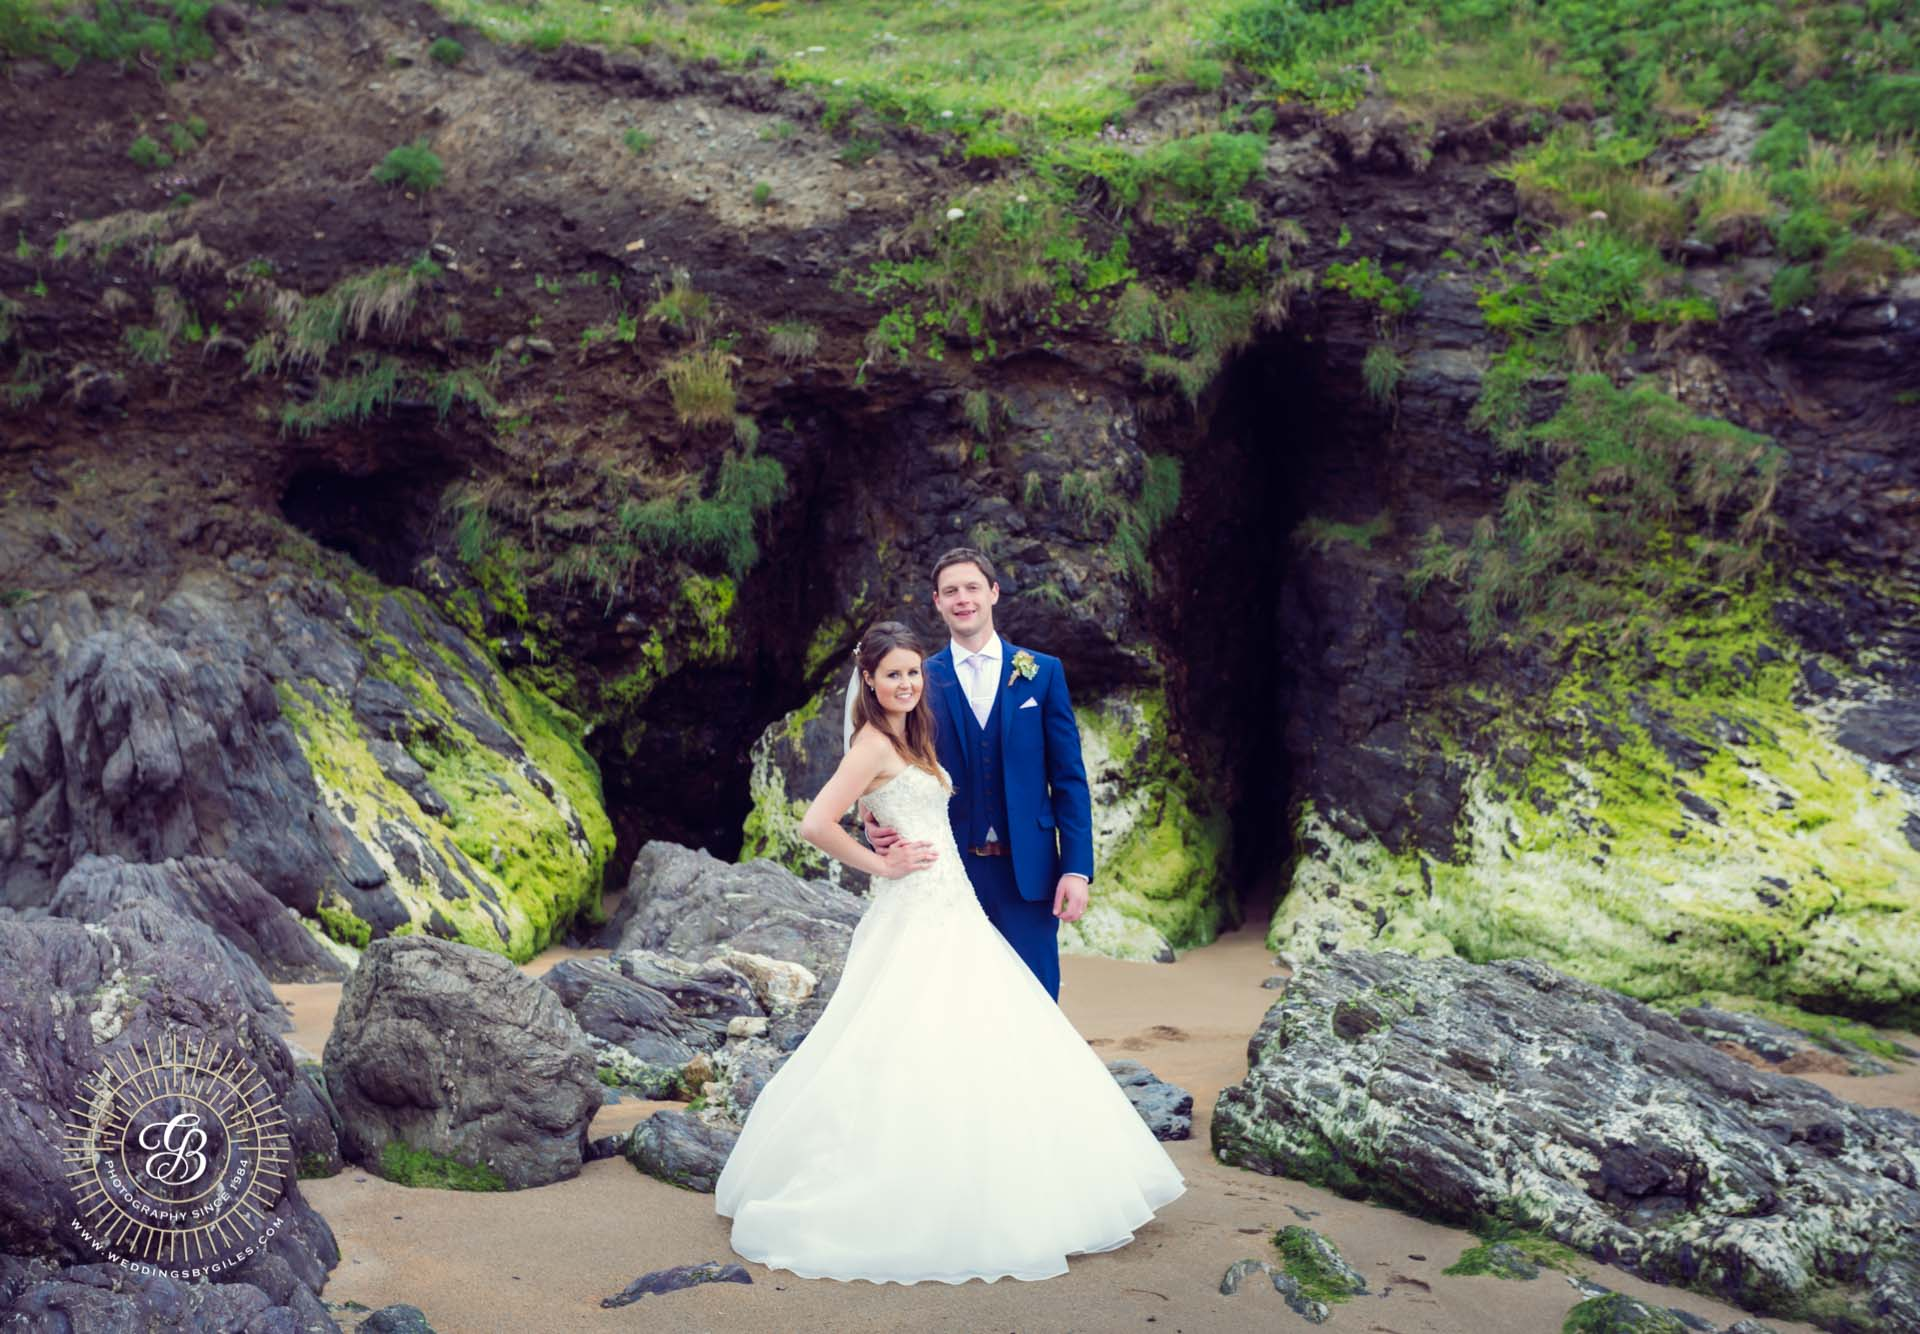 Devon Beach wedding photo shoot